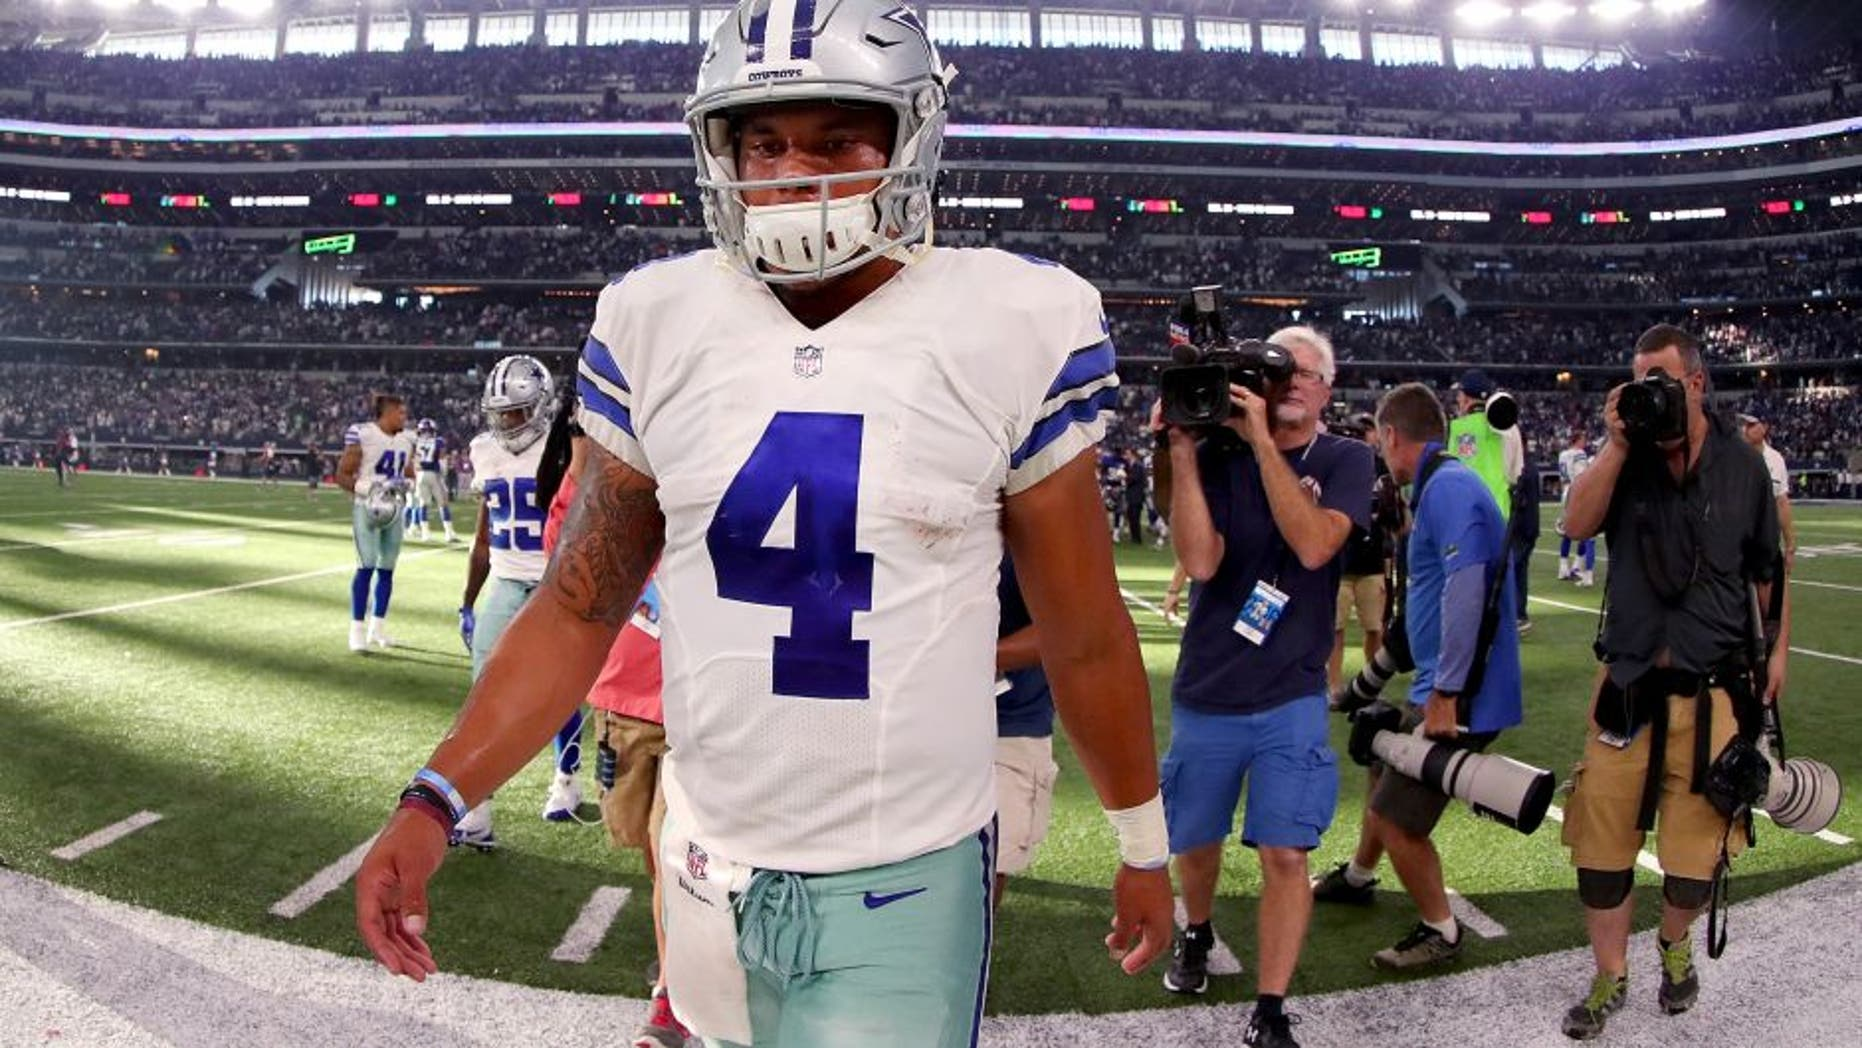 ARLINGTON, TX - SEPTEMBER 11: Dak Prescott #4 of the Dallas Cowboys walks off the field after losing to the New York Giants 20-19 at AT&T Stadium on September 11, 2016 in Arlington, Texas. (Photo by Tom Pennington/Getty Images)